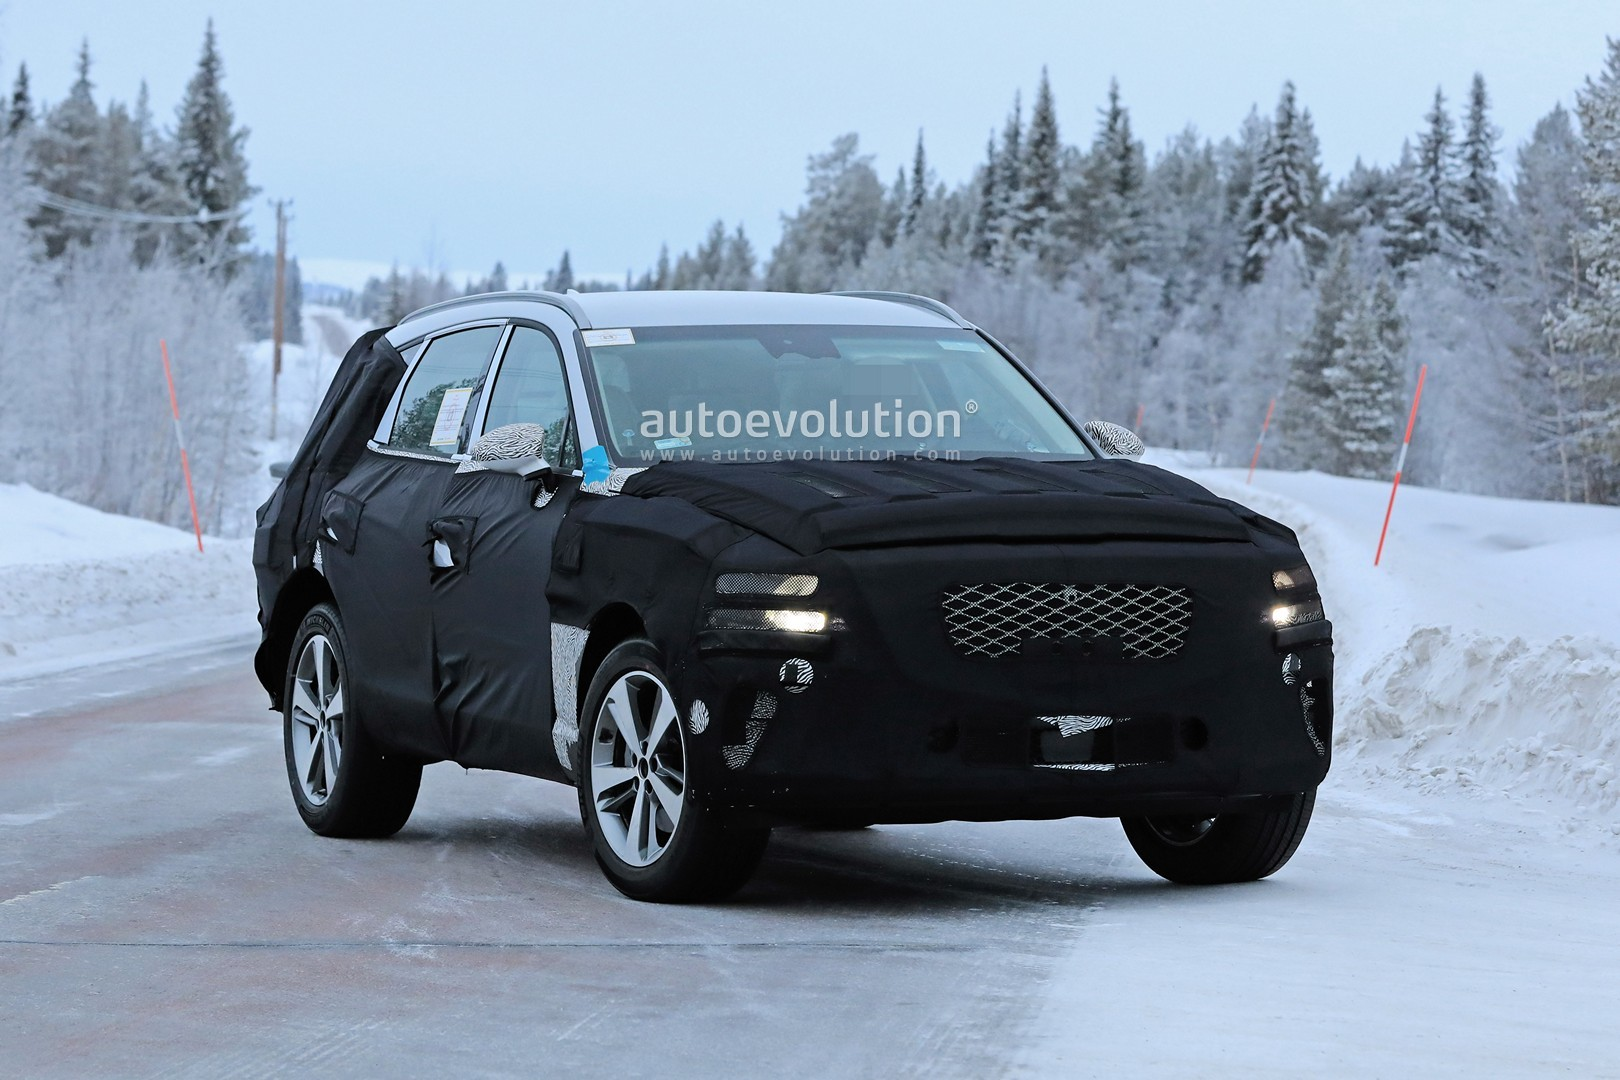 2019 - [Genesis] SUV GV80 - Page 2 Genesis-gv80-suv-prototype-makes-production-spyshots-debut_4